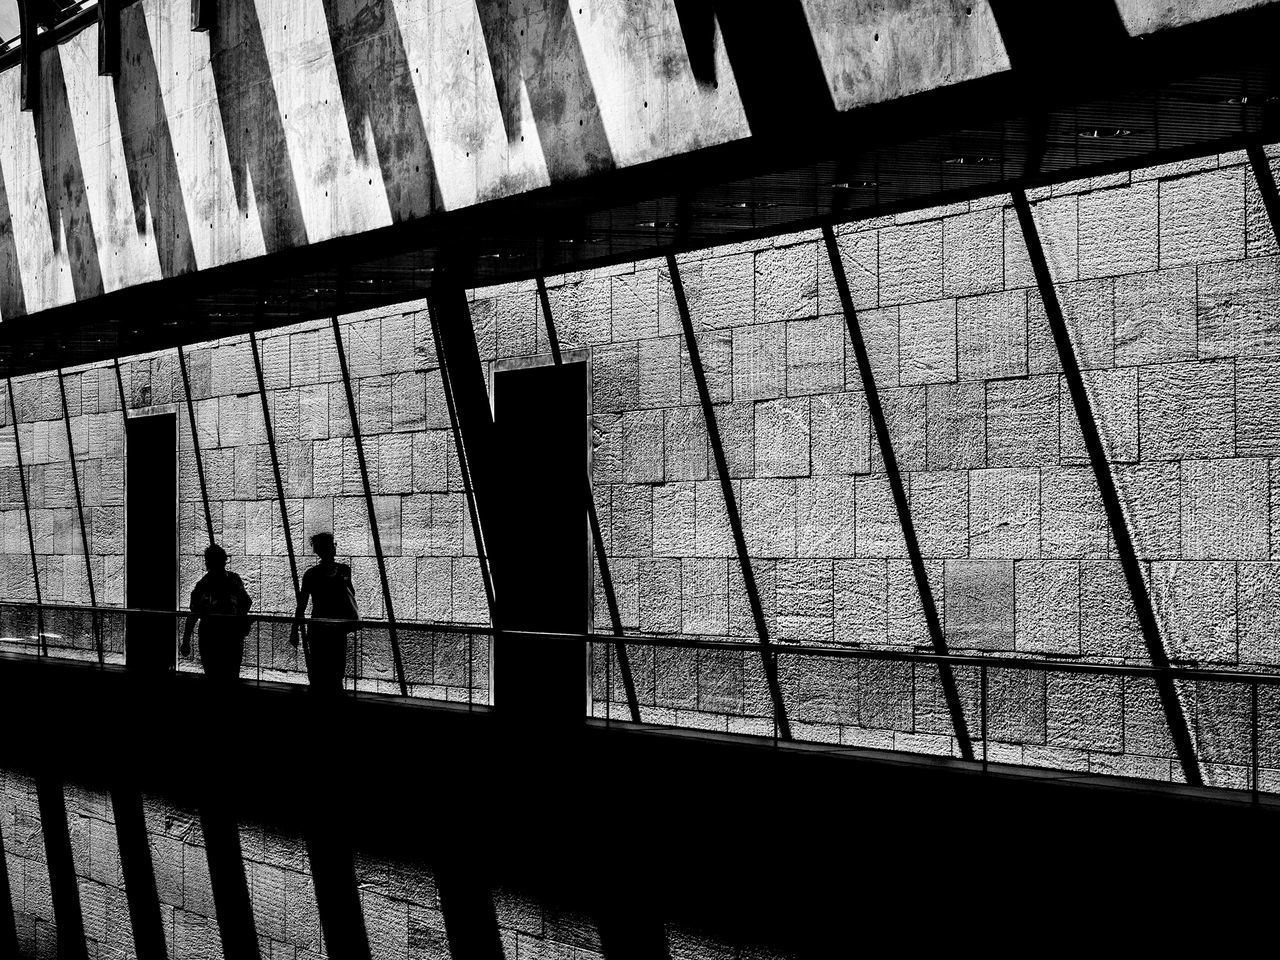 architecture, real people, built structure, silhouette, railing, walking, men, indoors, group of people, building, lifestyles, people, day, women, high angle view, shadow, leisure activity, wall - building feature, adult